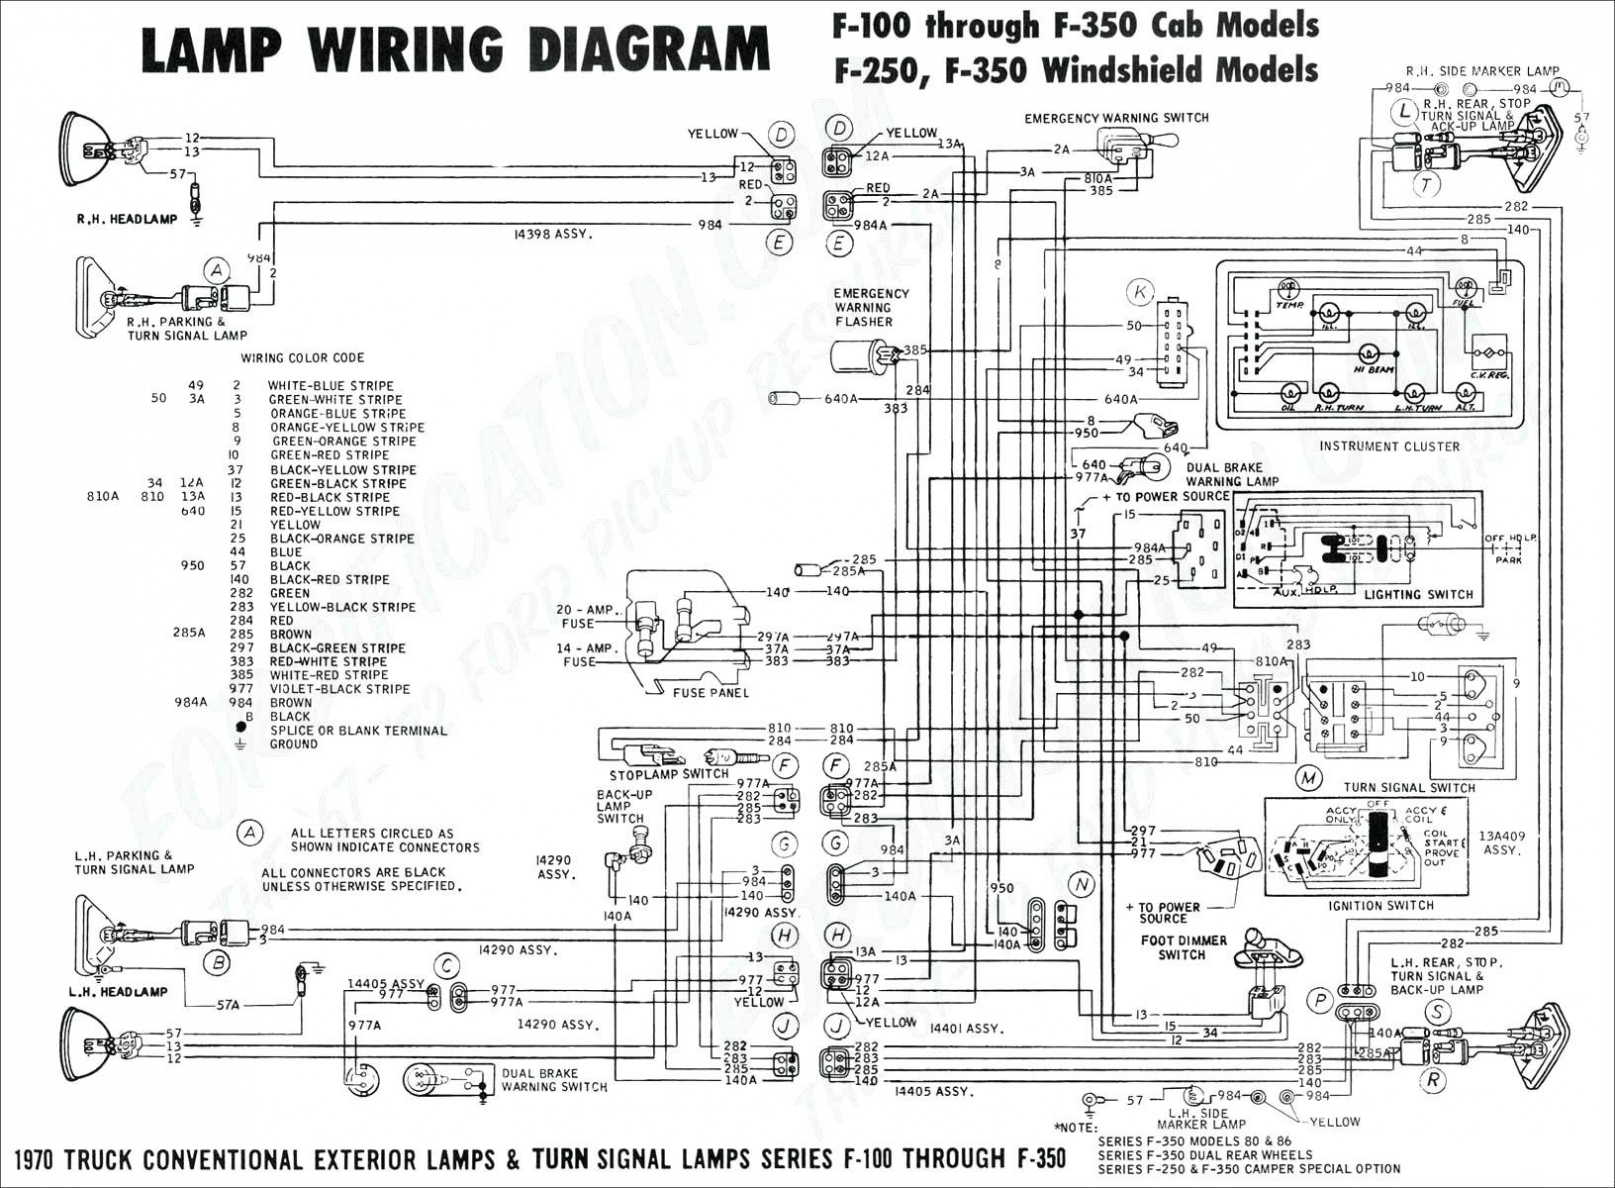 Isuzu Elf Stereo Wiring Diagram | Wiring Diagram on